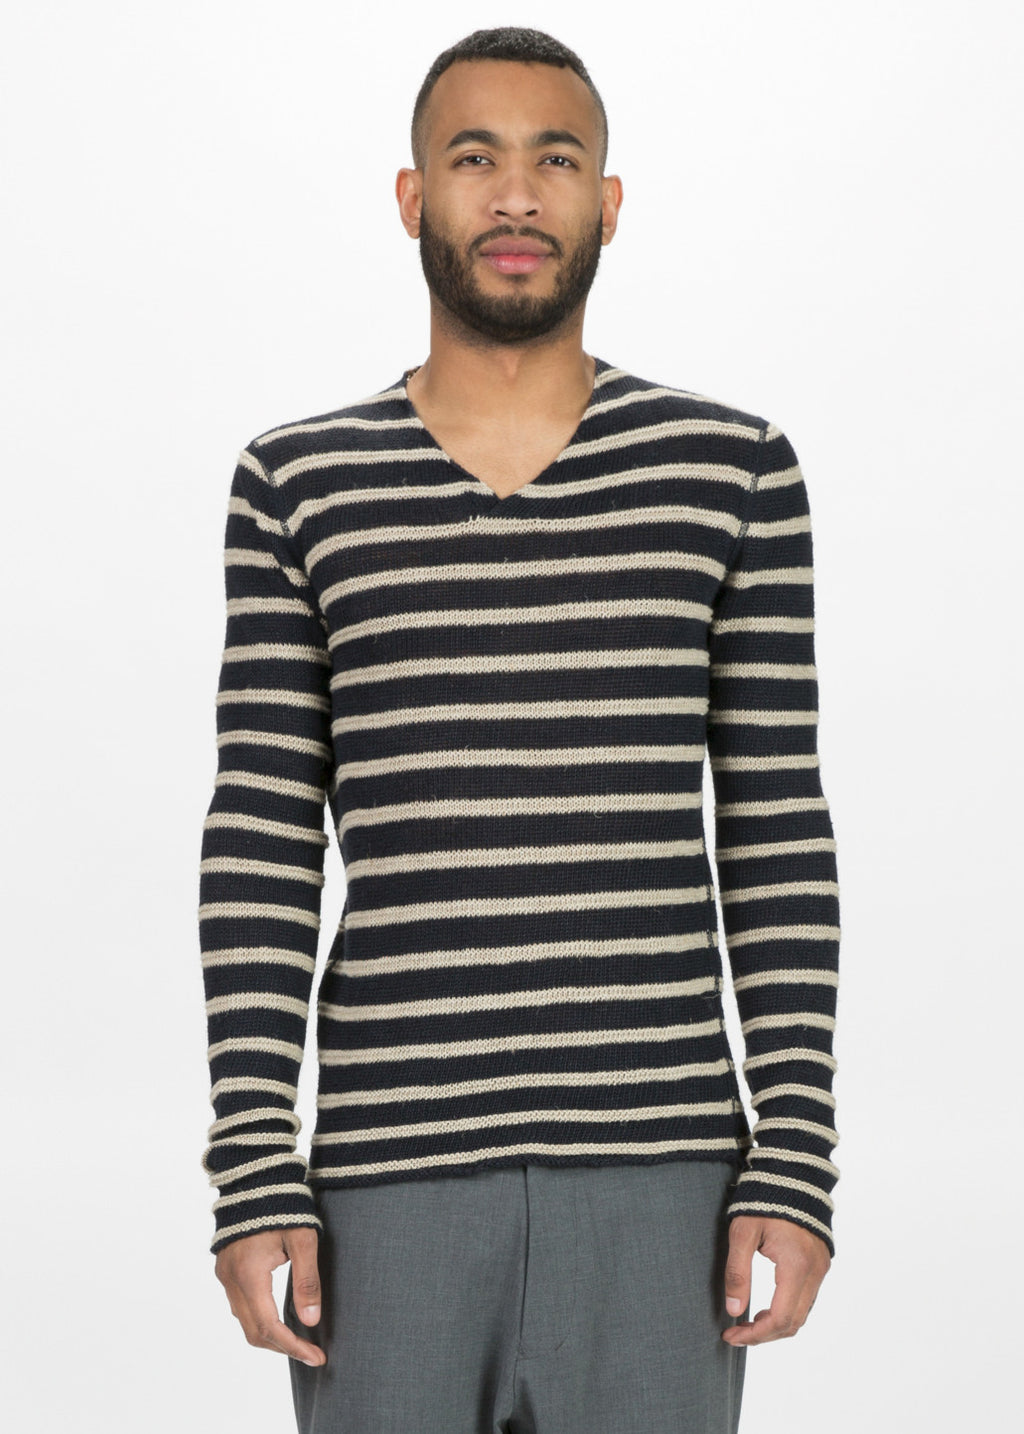 Hannes Roether Men's Zilk Knit V-Neck Sweater